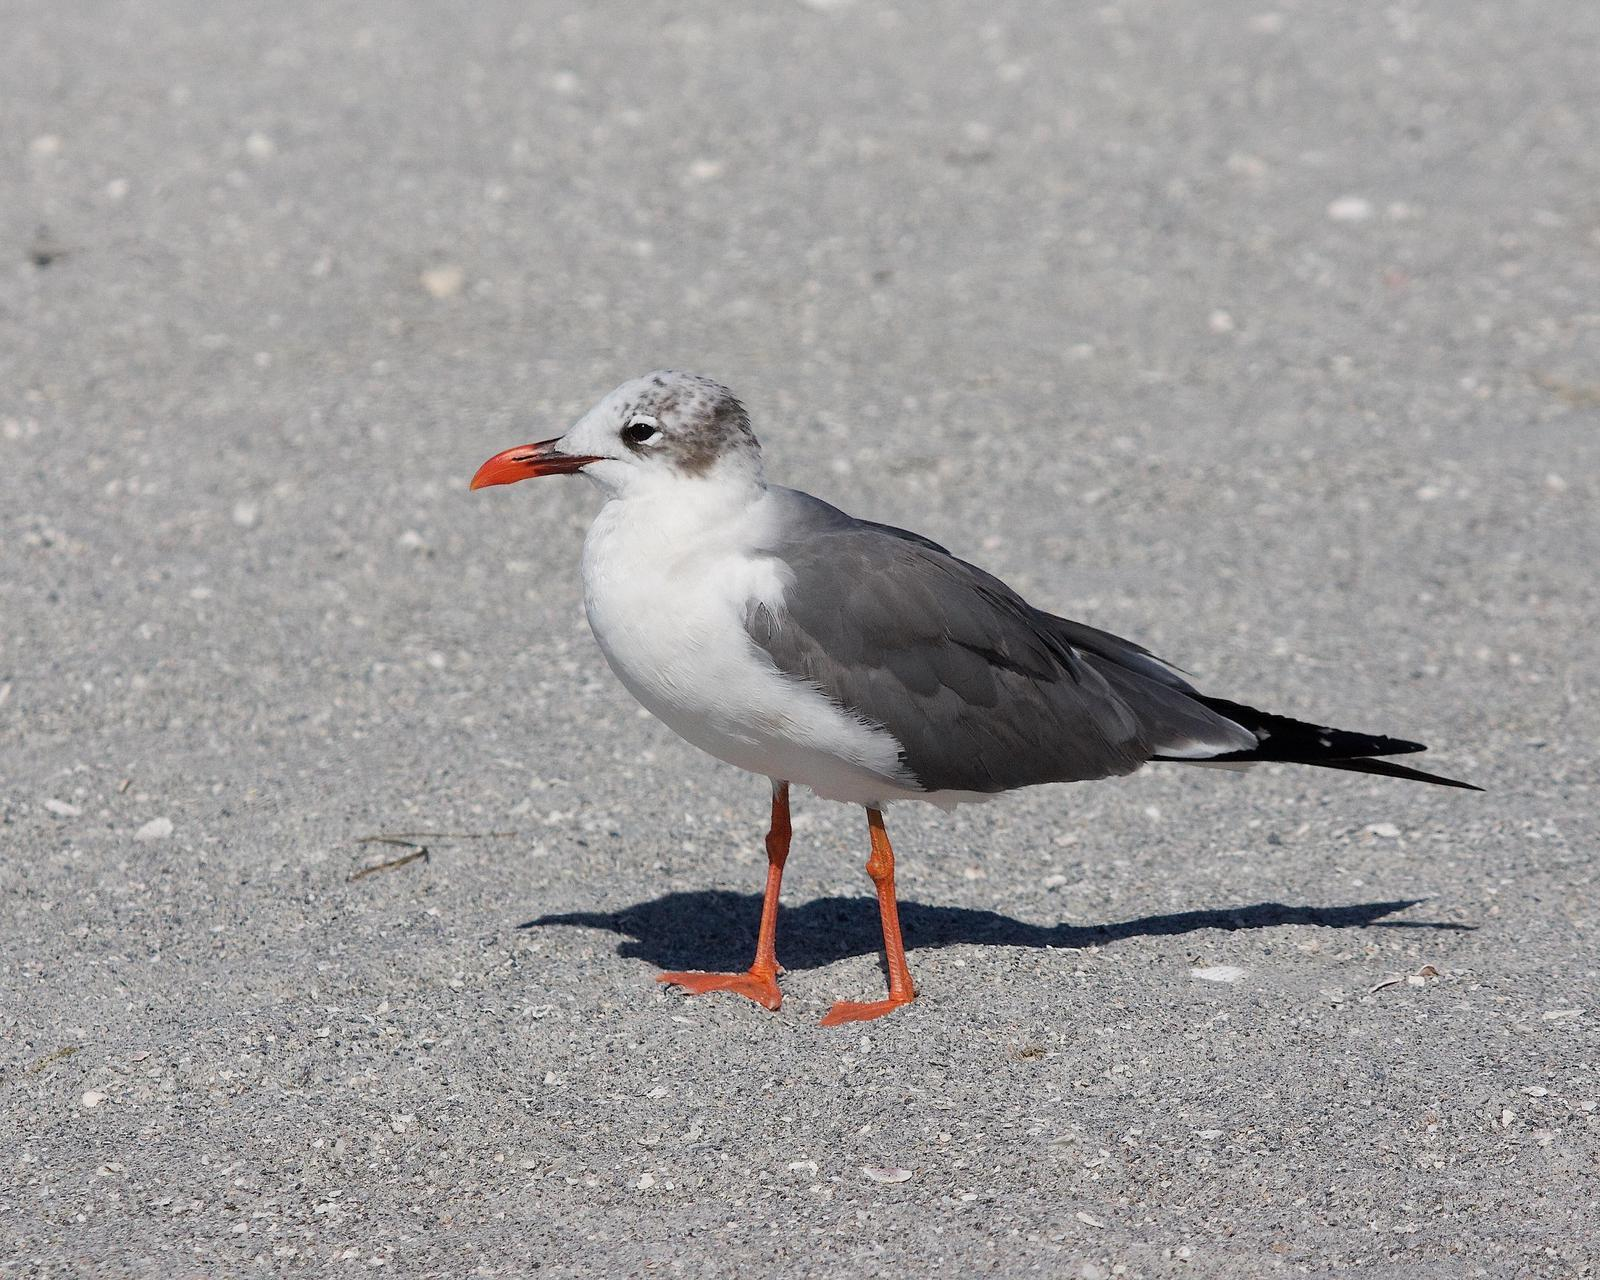 Laughing Gull Photo by Gerald Hoekstra